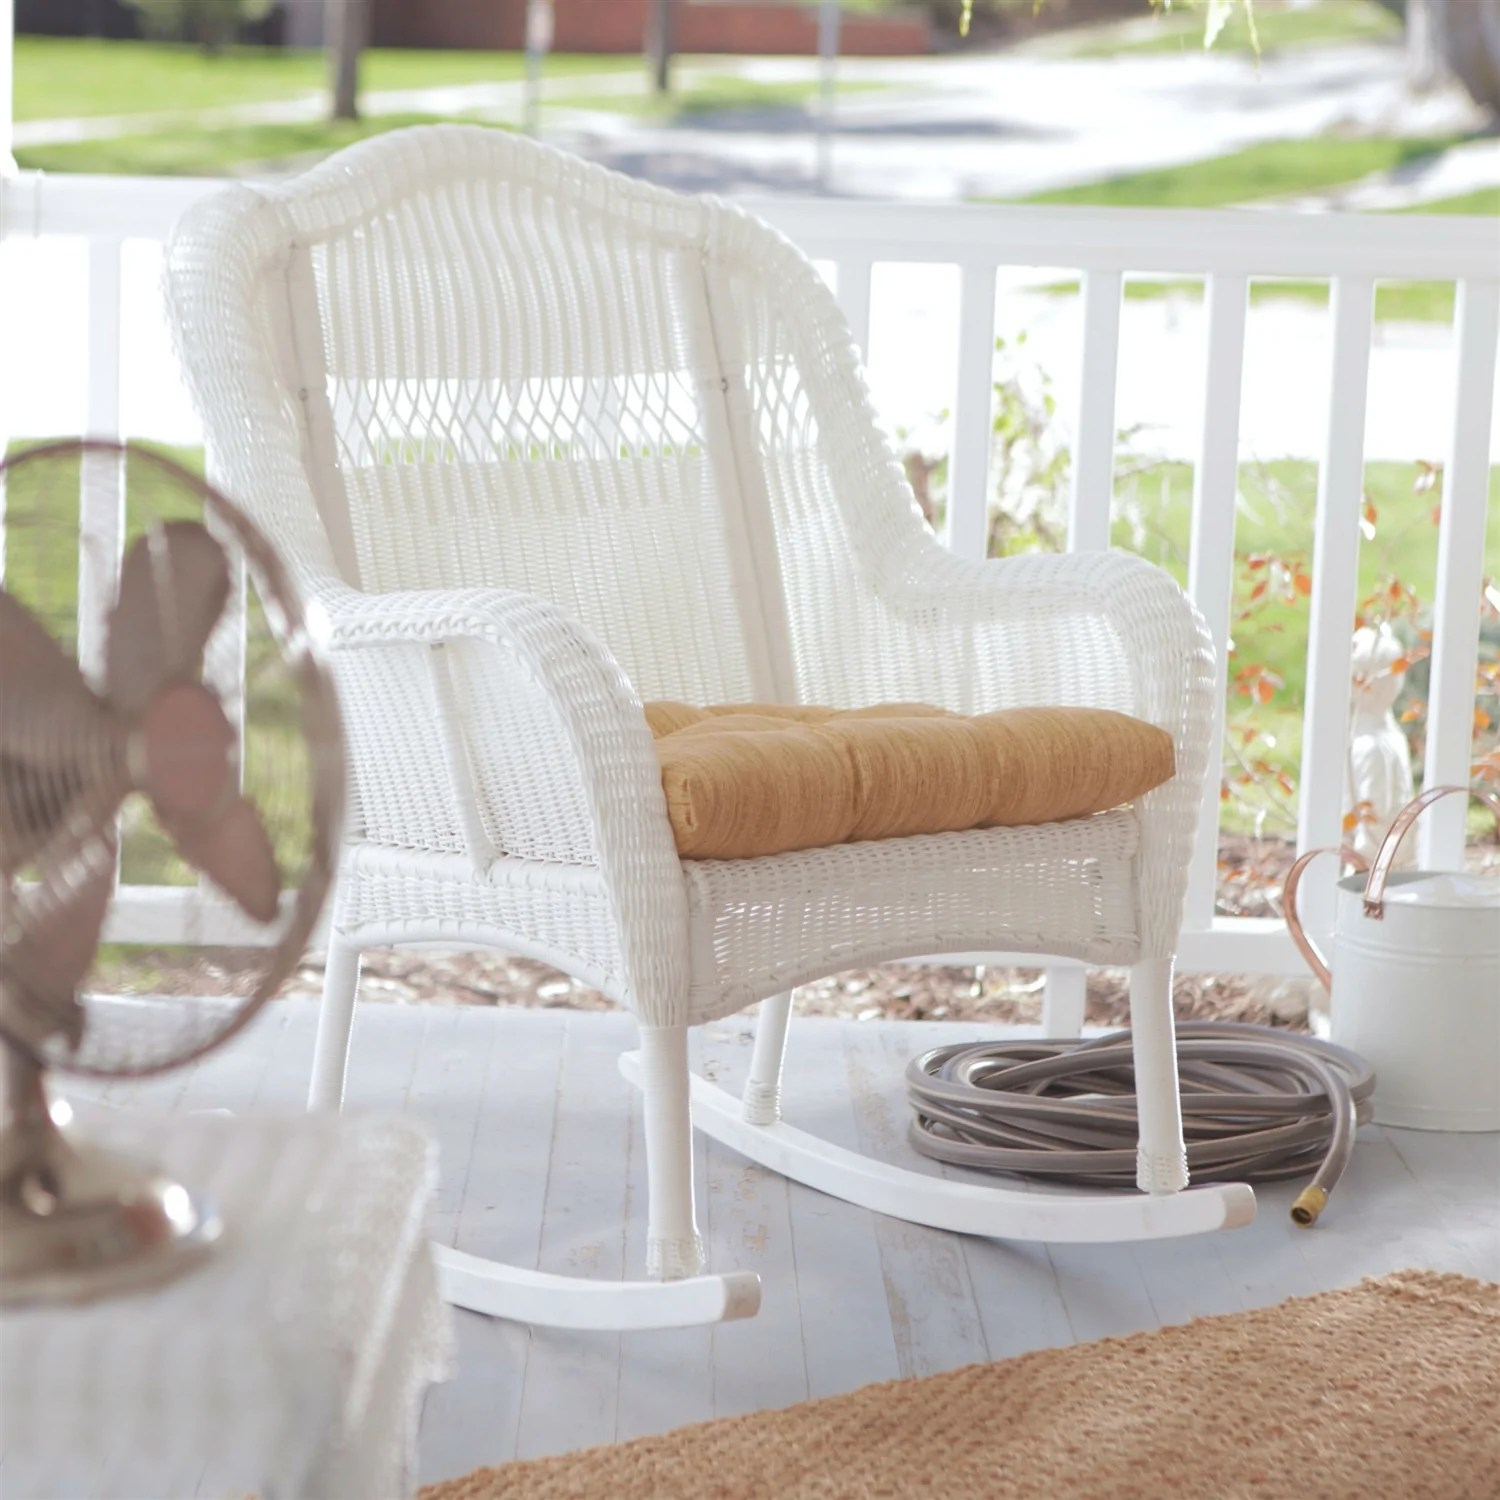 Wicker Rocking Chair Indoor Outdoor Patio Porch White Resin Wicker Rocking Chair